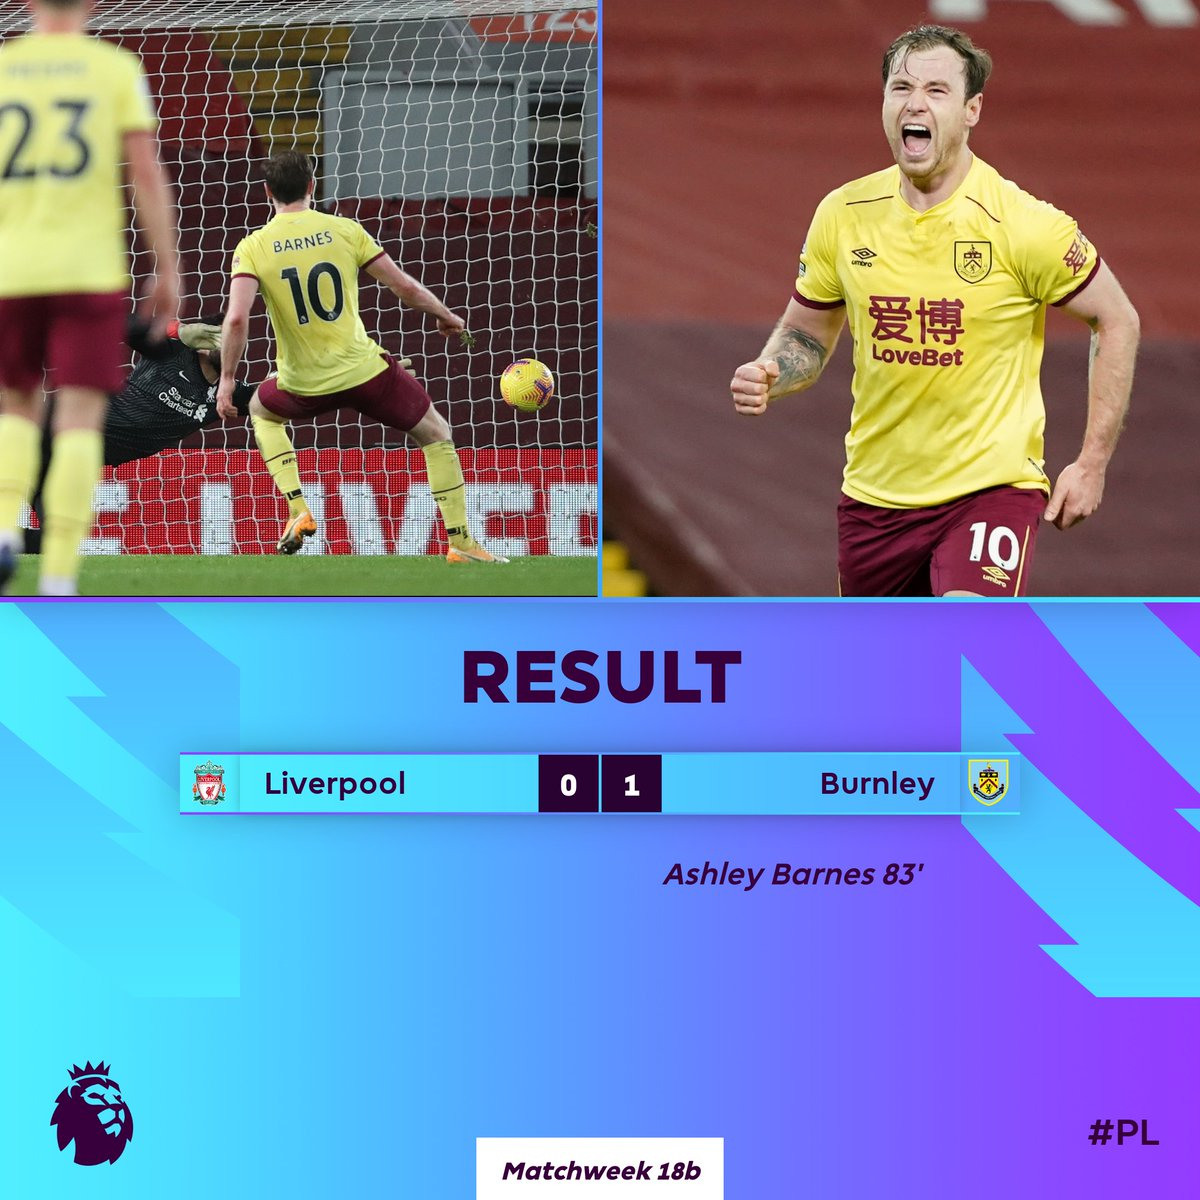 A 𝙗𝙞𝙜 win on the road for Burnley ends Liverpool's unbeaten home run  #LIVBUR